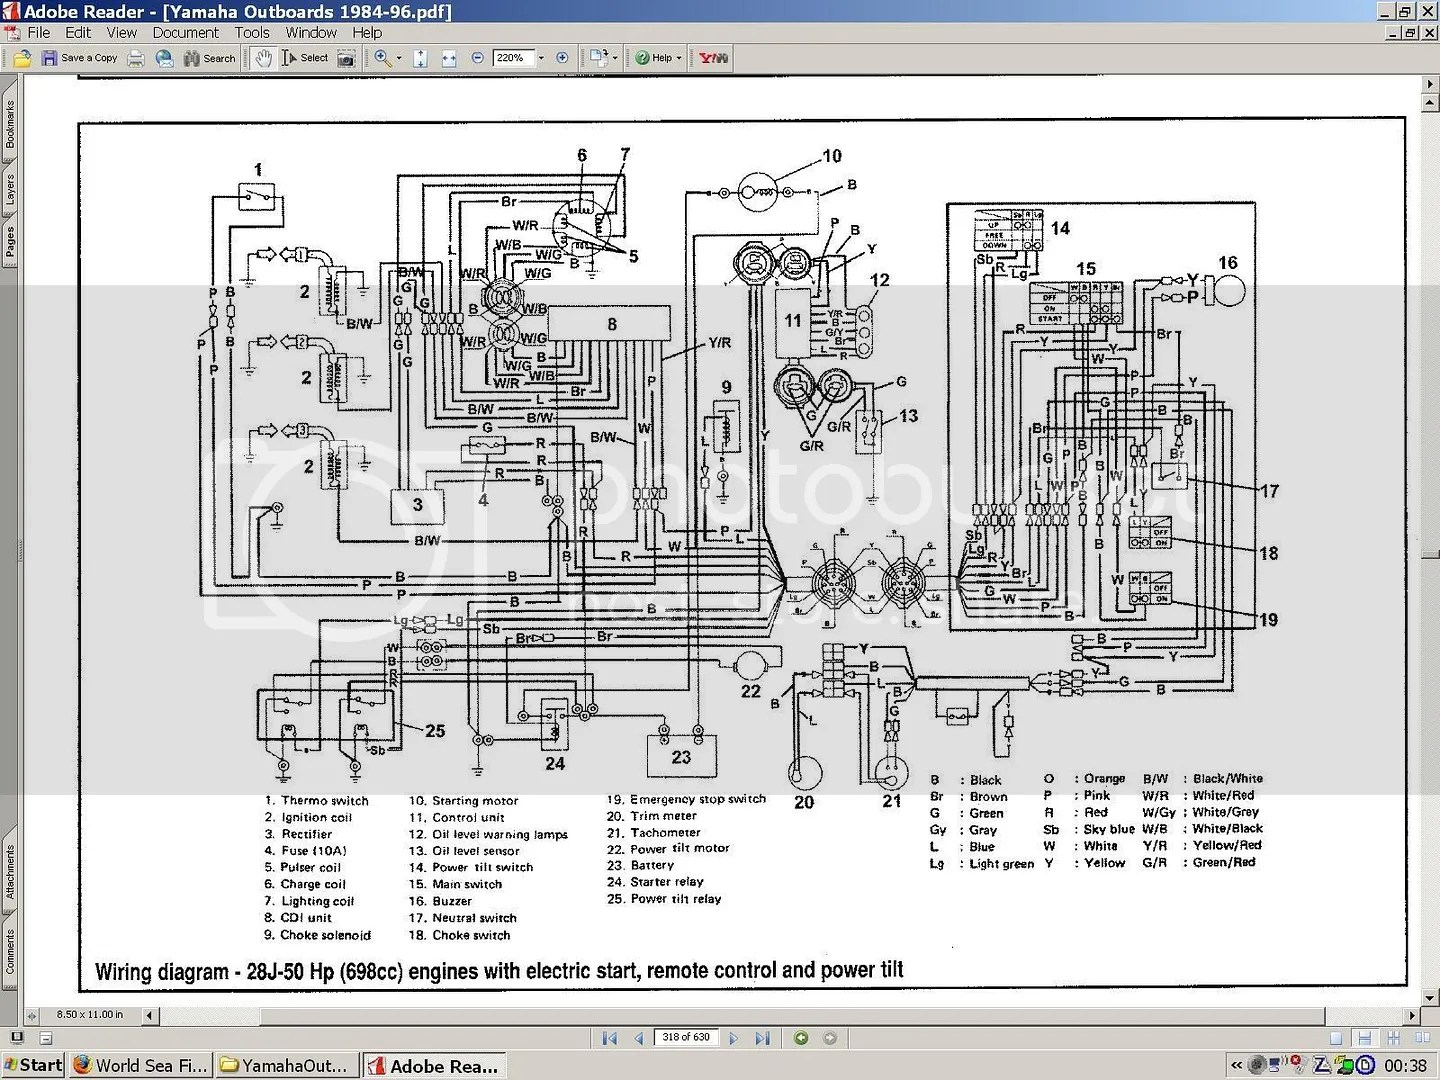 Lighting Coil Wiring Diagram - The Uptodate Wiring Diagram